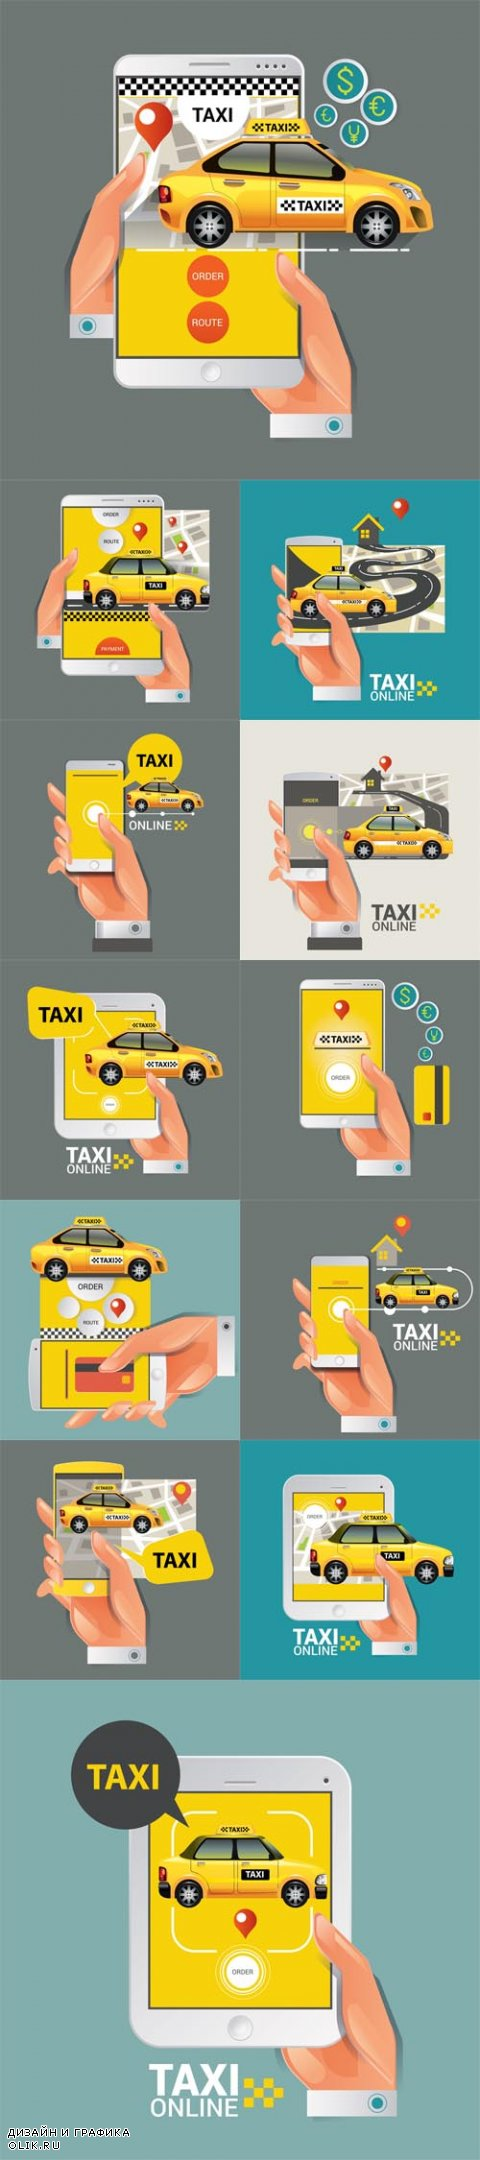 Vector Taxi on line. Taxi sign. Taxi service on smart phone